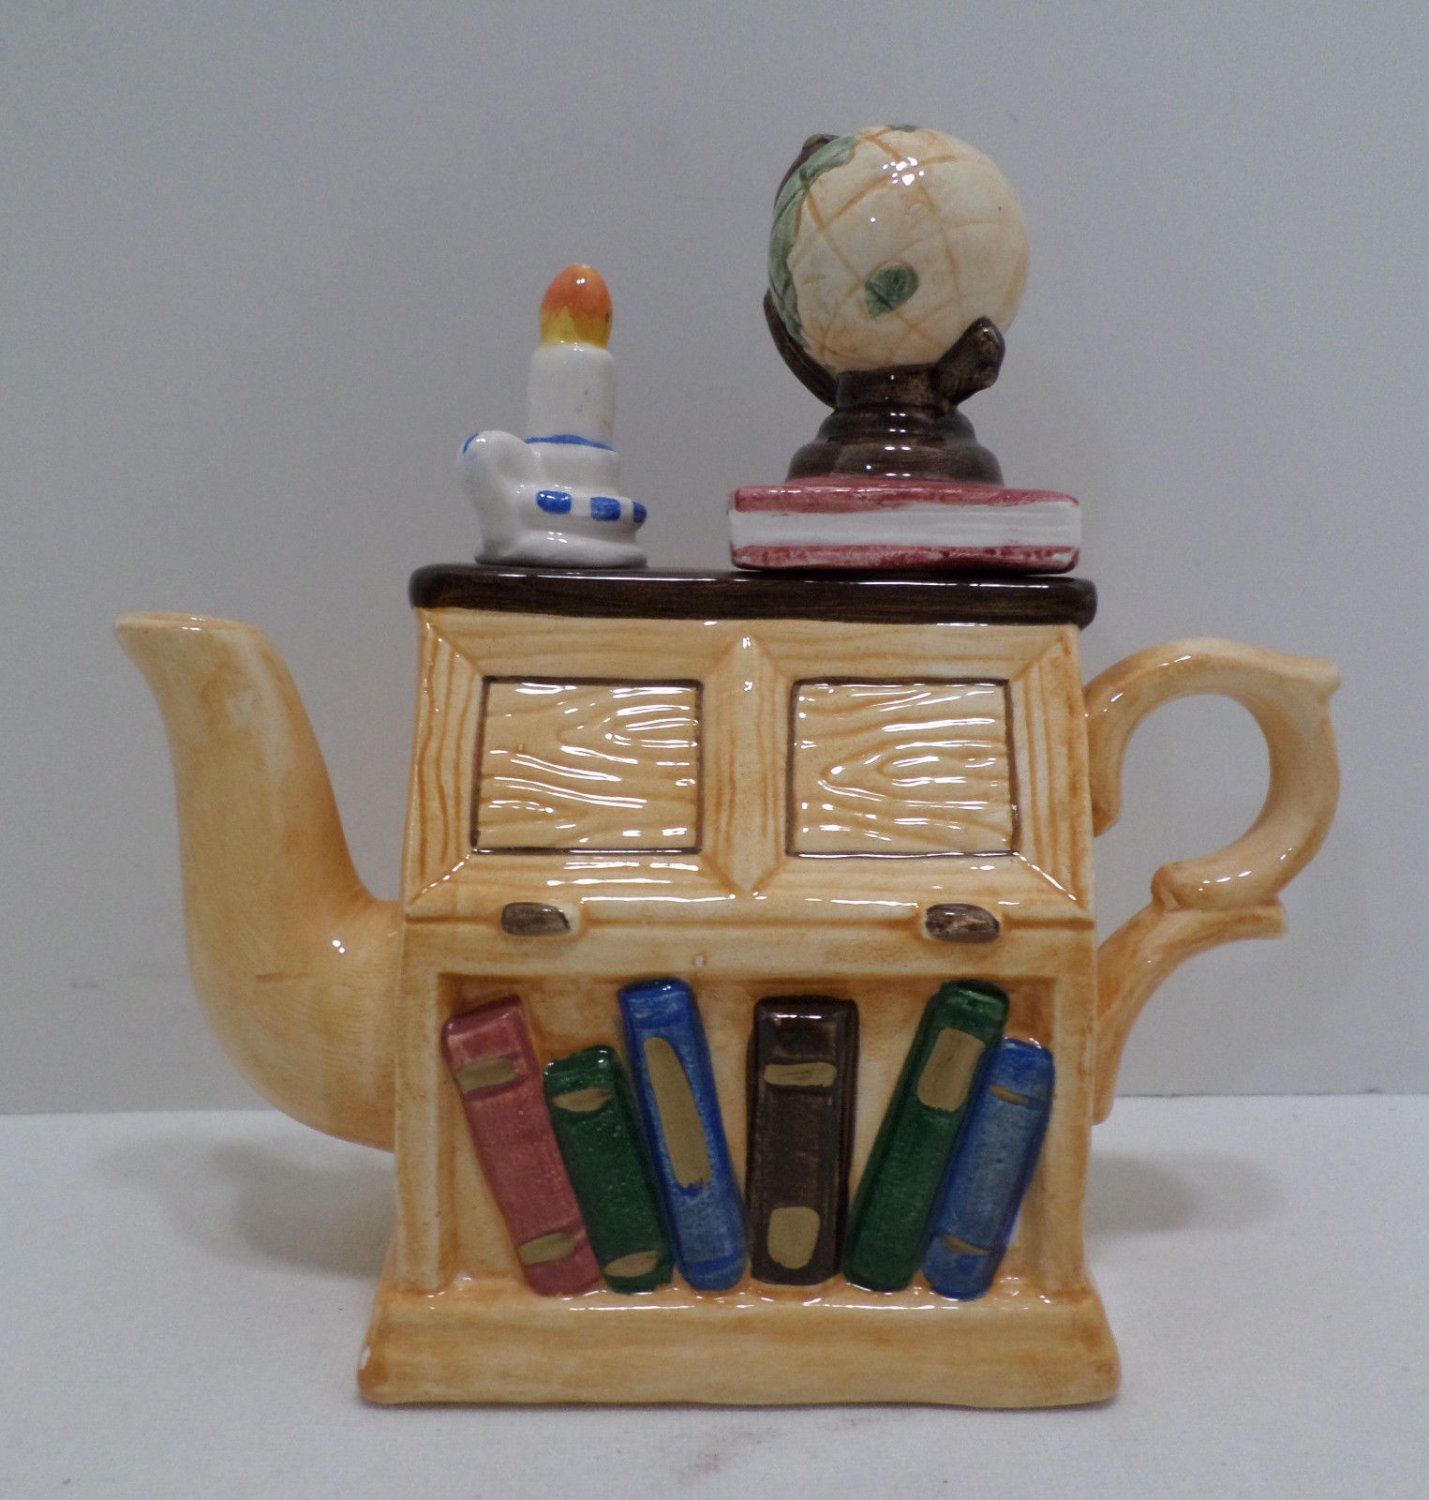 Vintage Teapot Porcelain Desk with Globe Candle and Books